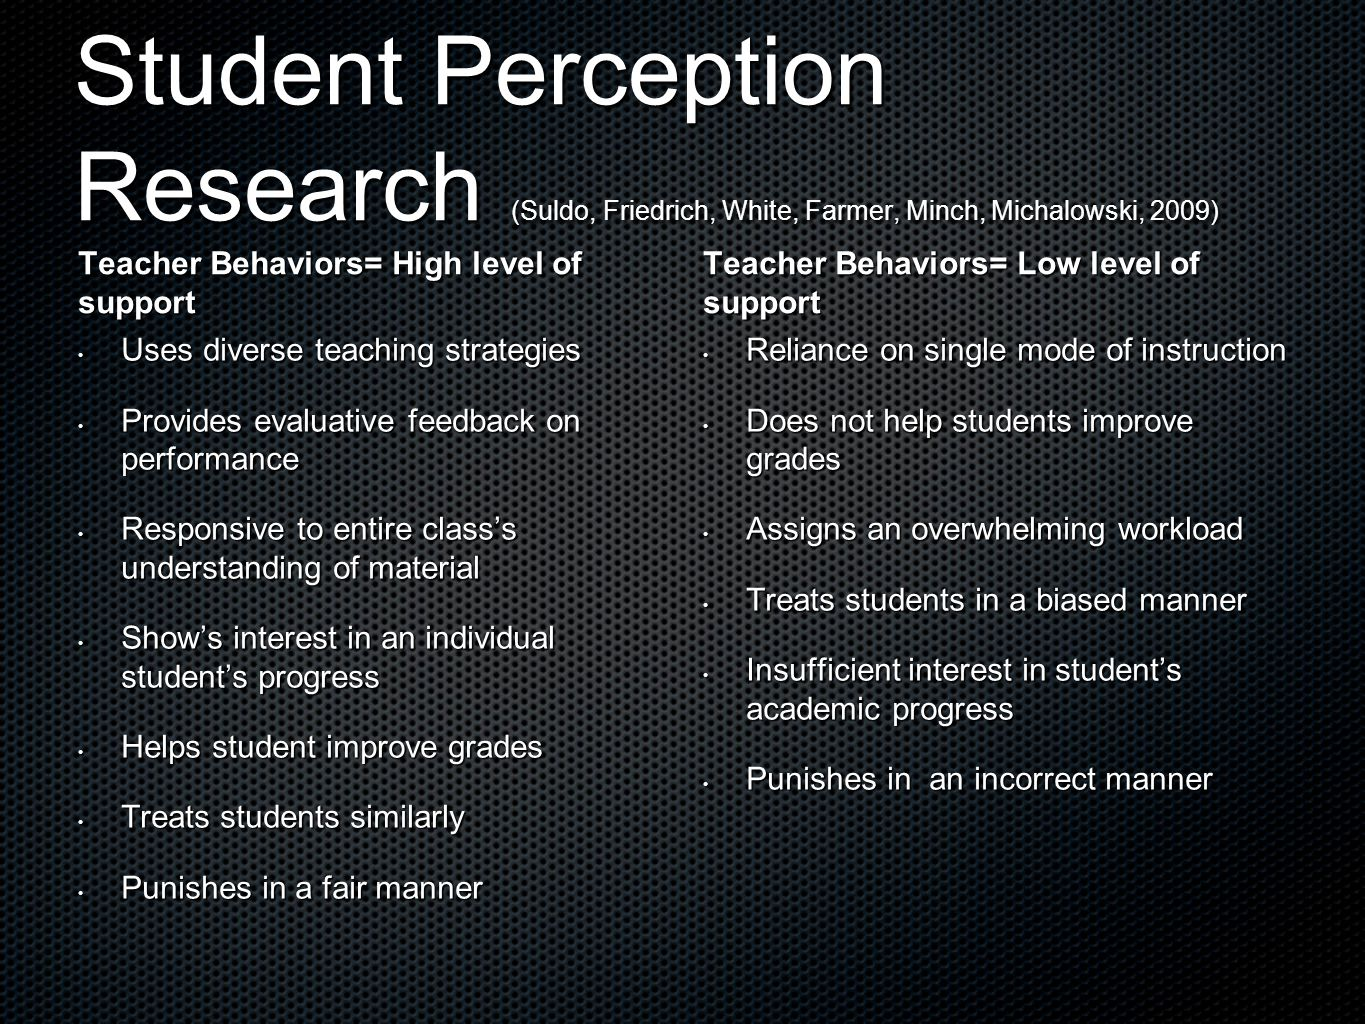 Student Perception Research (Suldo, Friedrich, White, Farmer, Minch, Michalowski, 2009) Teacher Behaviors= High level of support Uses diverse teaching strategies Uses diverse teaching strategies Provides evaluative feedback on performance Provides evaluative feedback on performance Responsive to entire class's understanding of material Responsive to entire class's understanding of material Show's interest in an individual student's progress Show's interest in an individual student's progress Helps student improve grades Helps student improve grades Treats students similarly Treats students similarly Punishes in a fair manner Punishes in a fair manner Teacher Behaviors= Low level of support Reliance on single mode of instruction Reliance on single mode of instruction Does not help students improve grades Does not help students improve grades Assigns an overwhelming workload Assigns an overwhelming workload Treats students in a biased manner Treats students in a biased manner Insufficient interest in student's academic progress Insufficient interest in student's academic progress Punishes in an incorrect manner Punishes in an incorrect manner